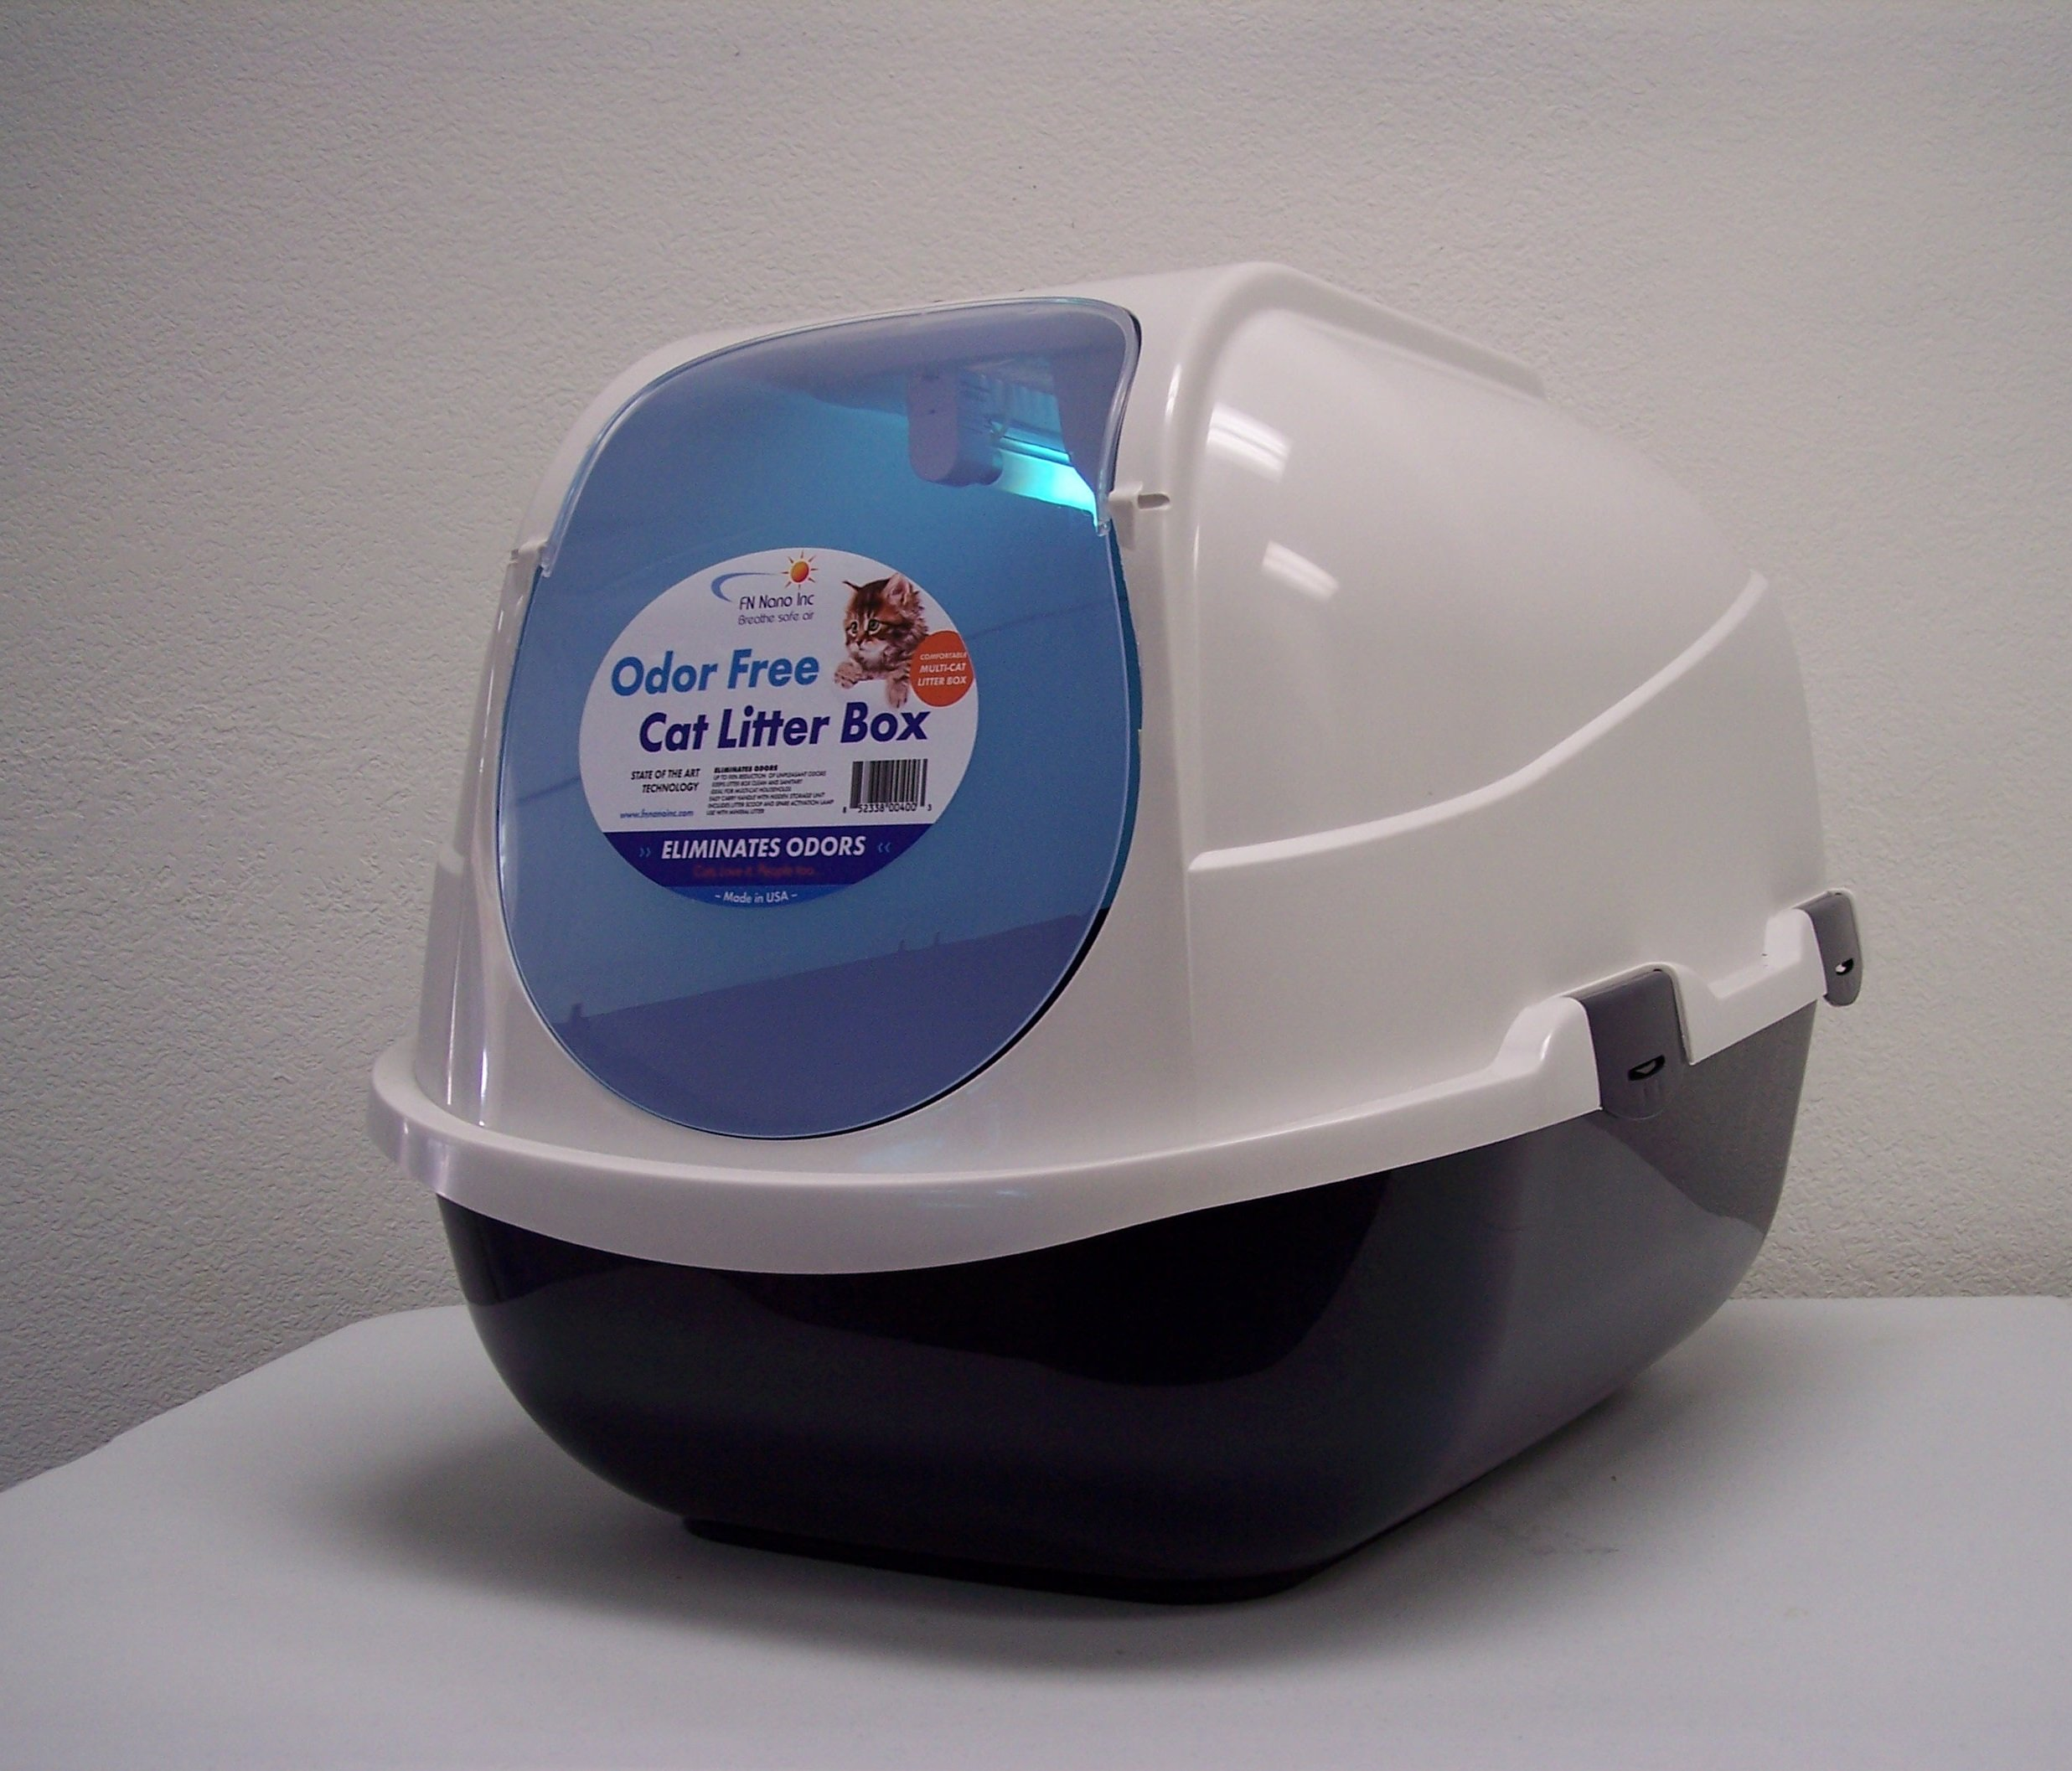 Odor Free Cat Litter Box, State of the Art Technology